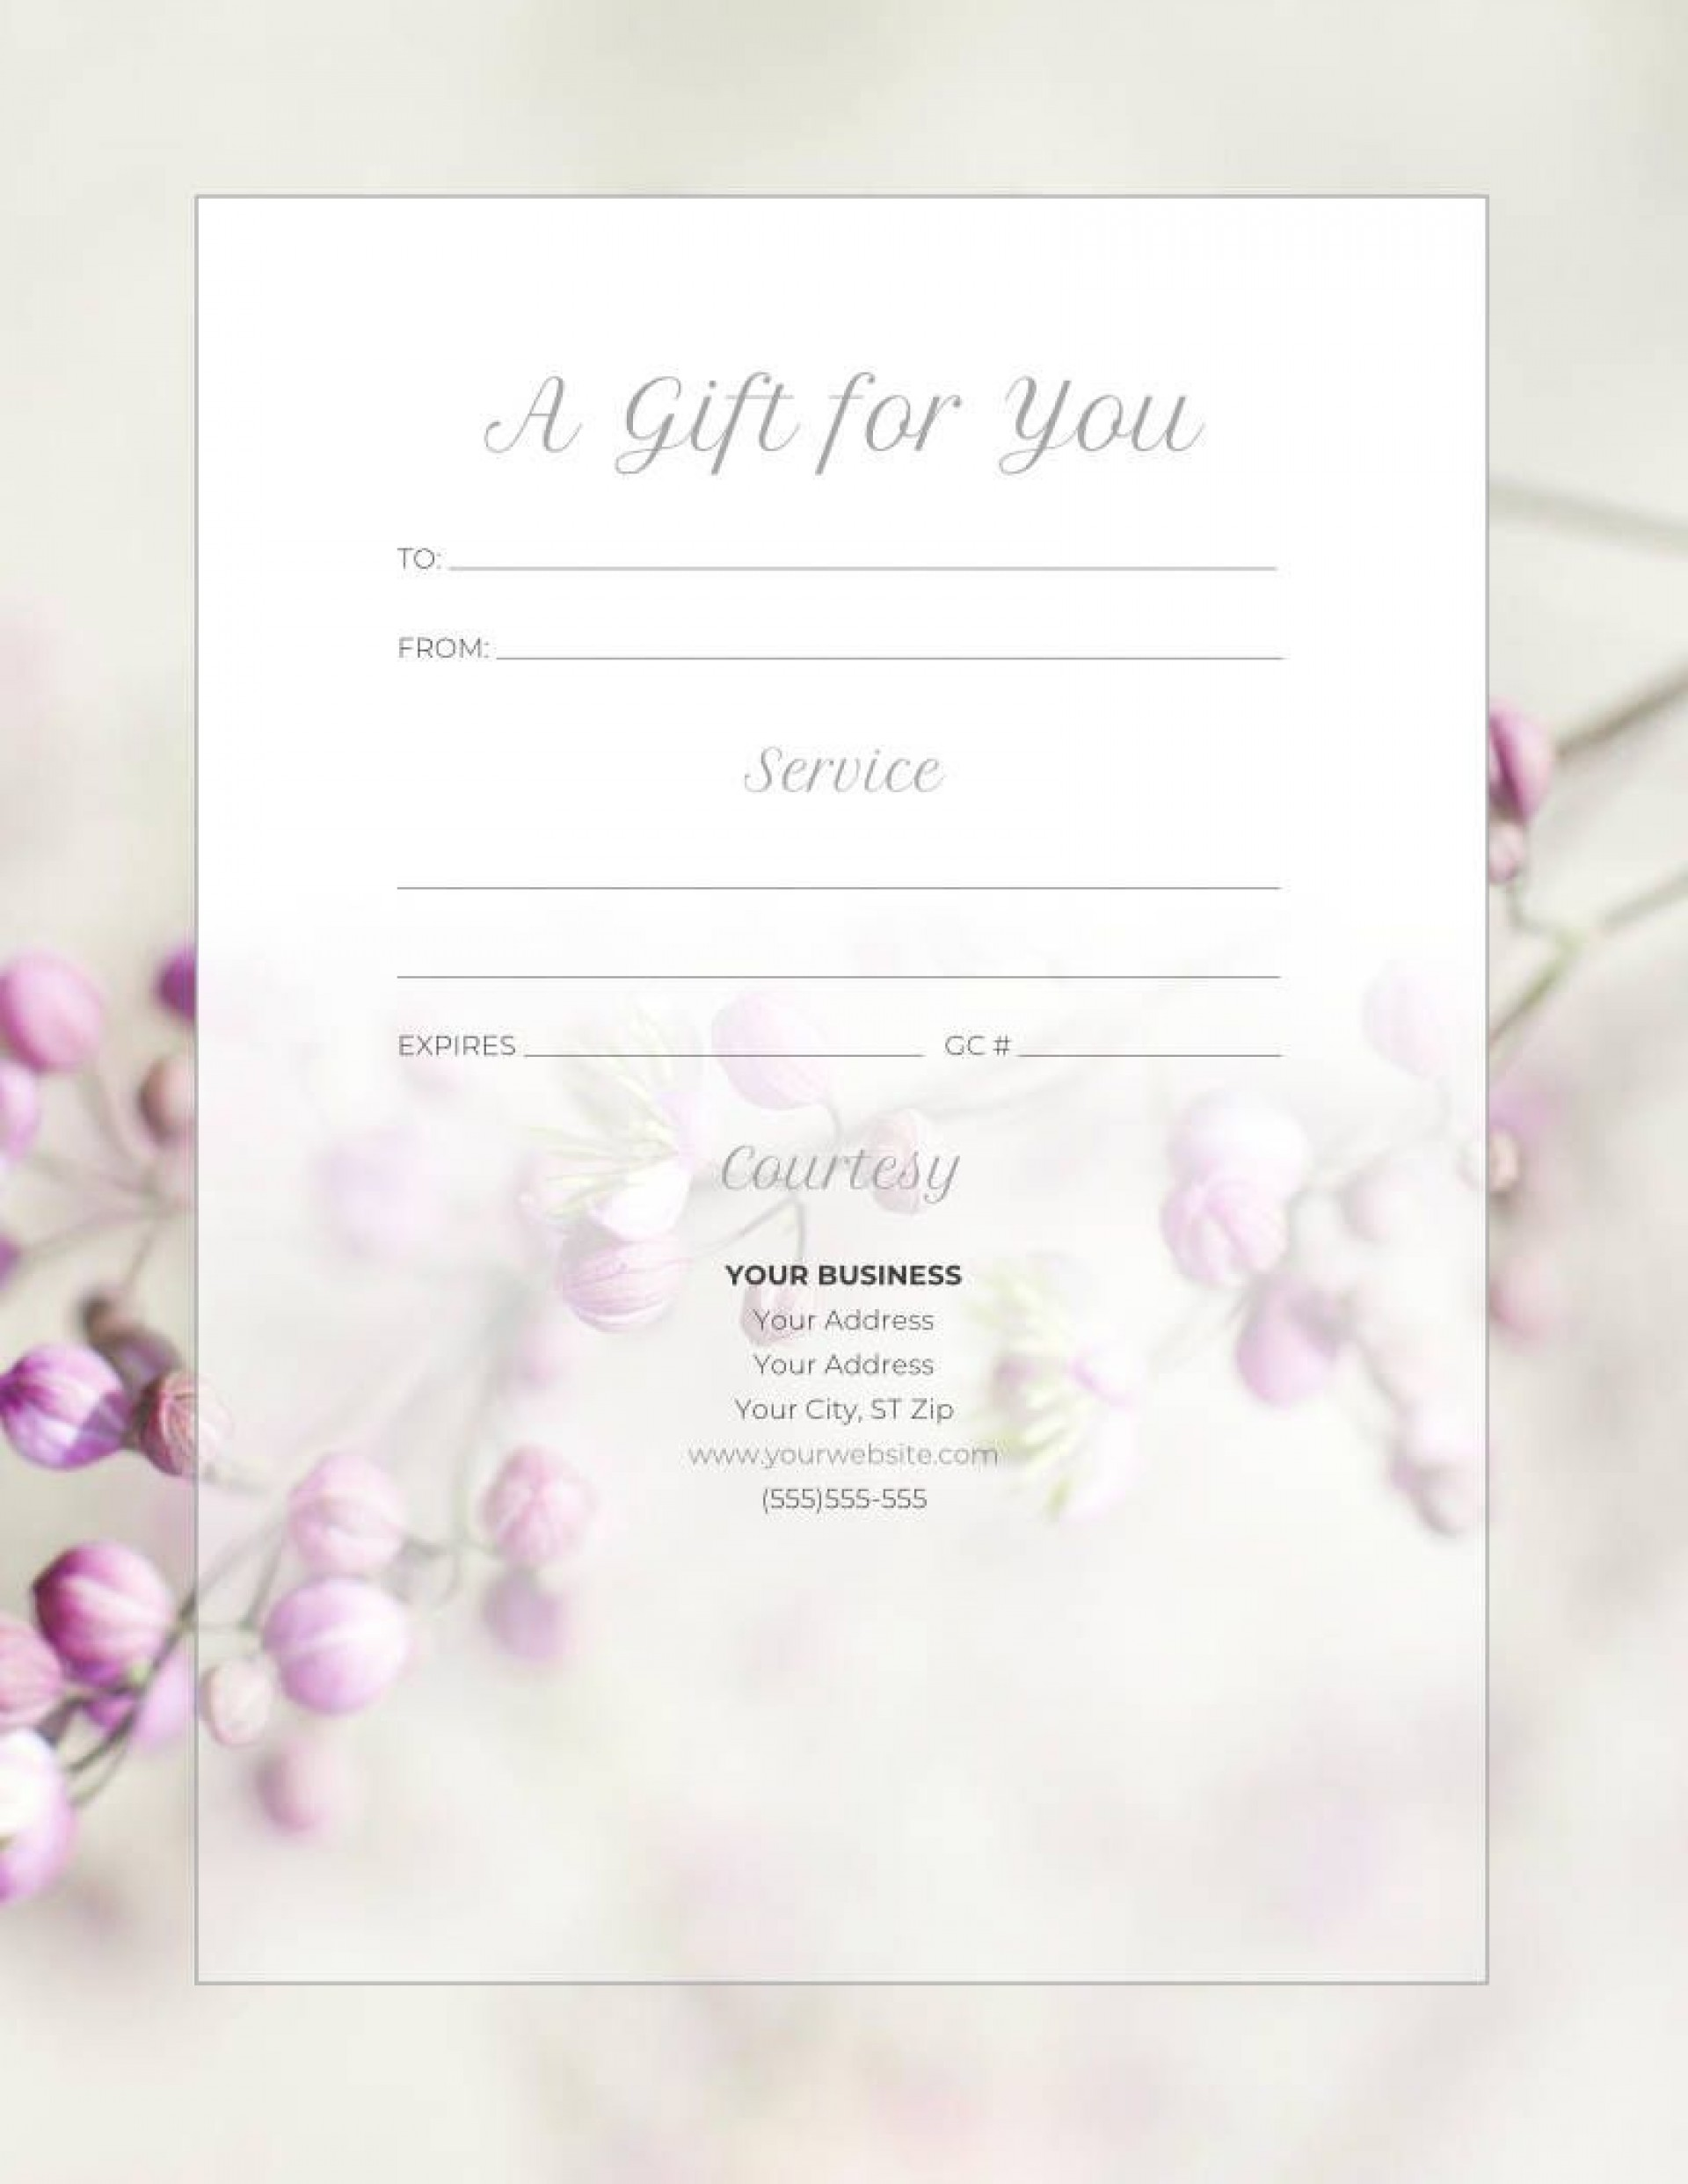 009 Magnificent Free Template For Gift Certificate Photo  Printable Birthday Mac In Word1920